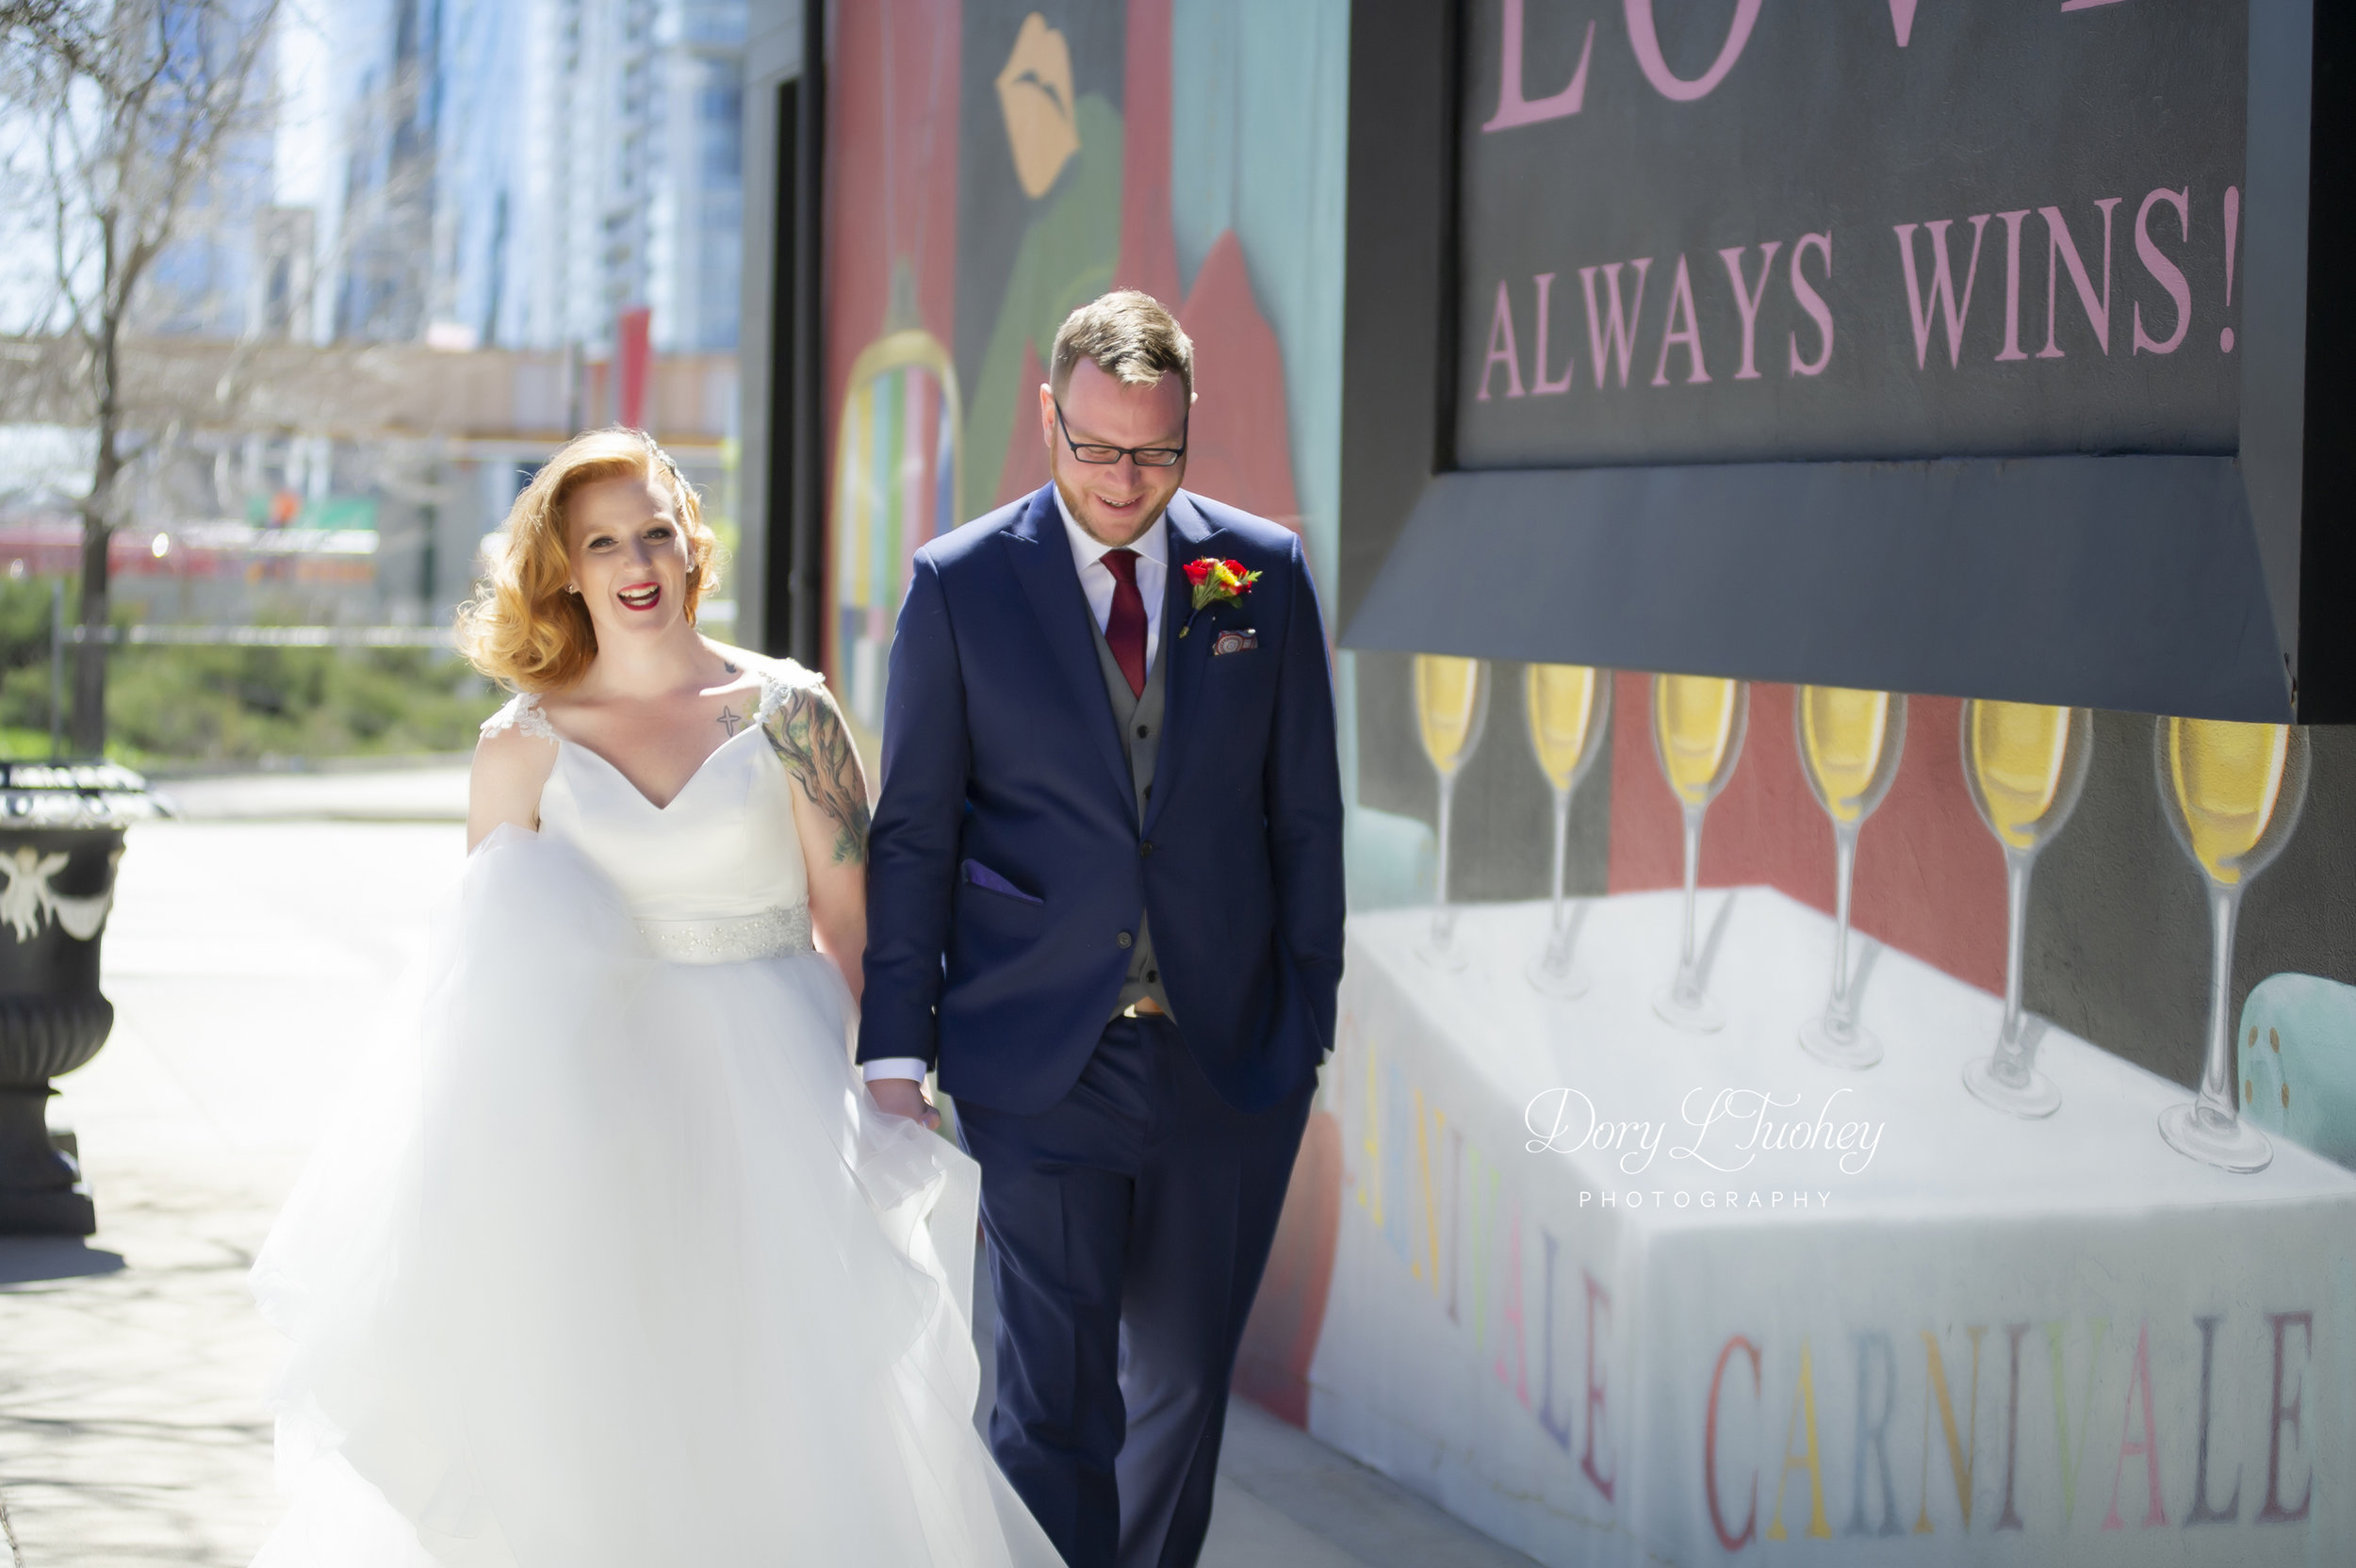 Carnivale_chicago_dory_wedding_vintage_bride_red_lips_paint_mural_groom_14.jpg